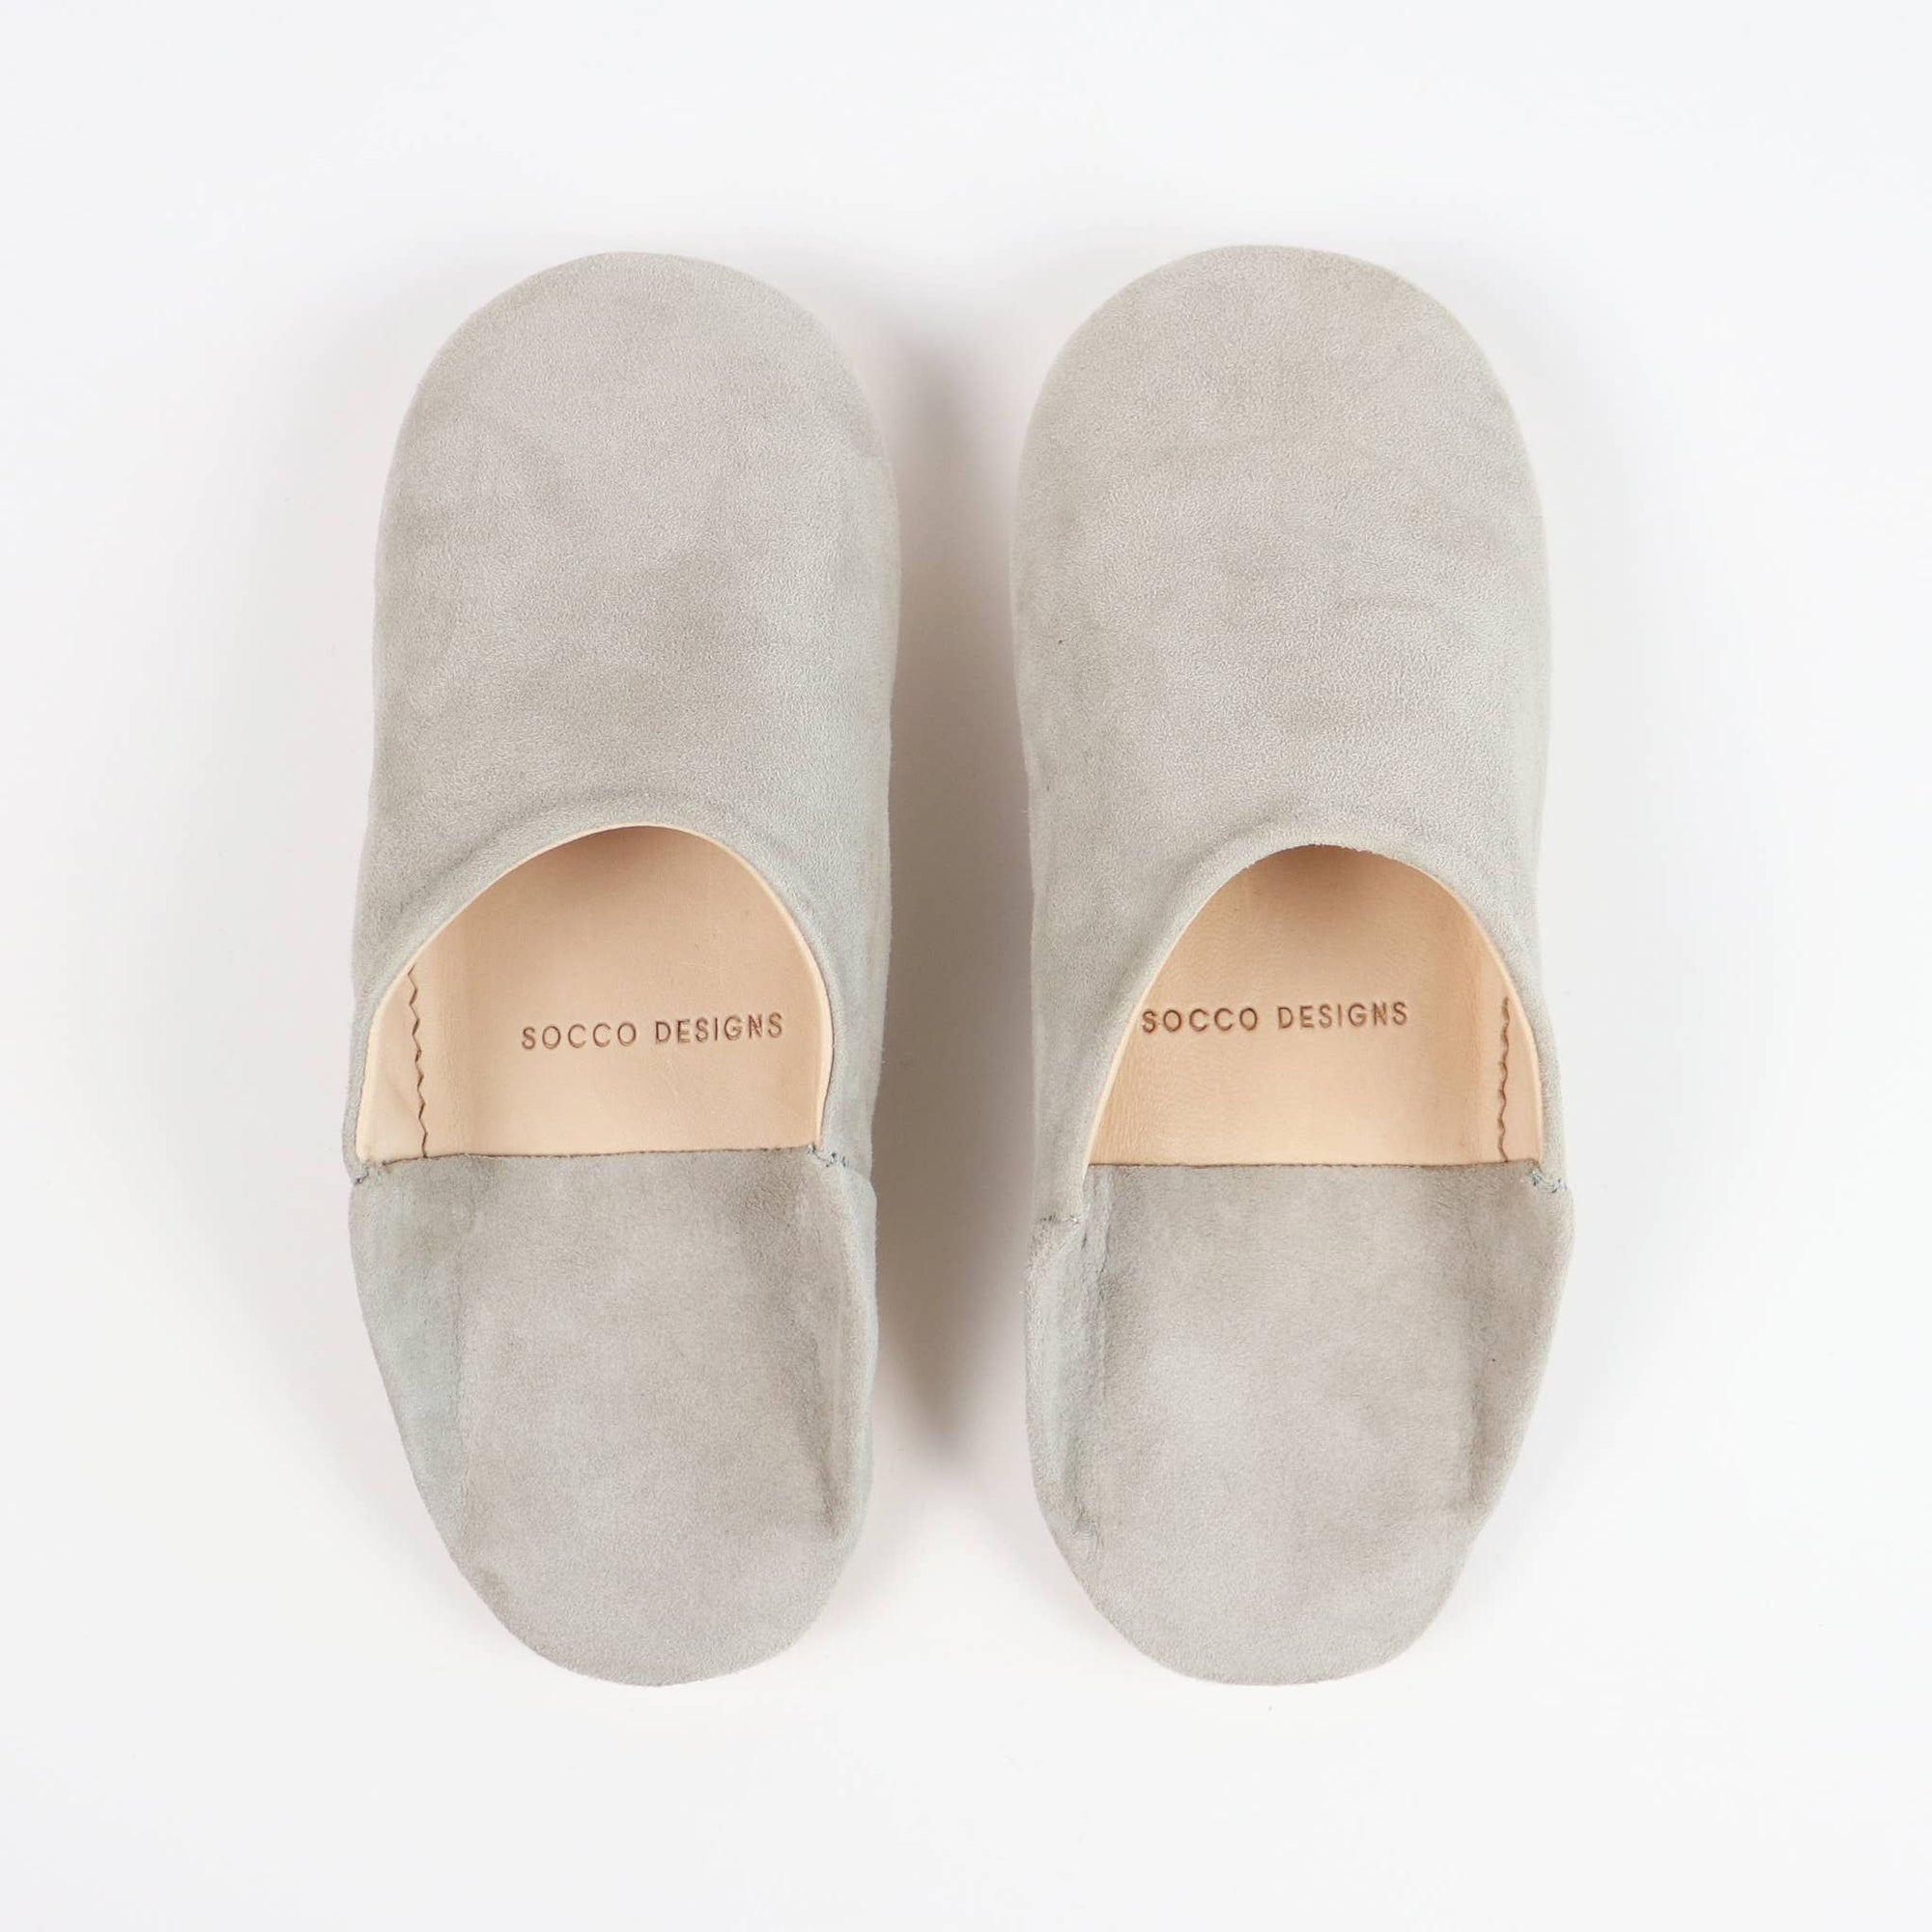 Babouche Moroccan Slippers in Grey Suede by SOCCO